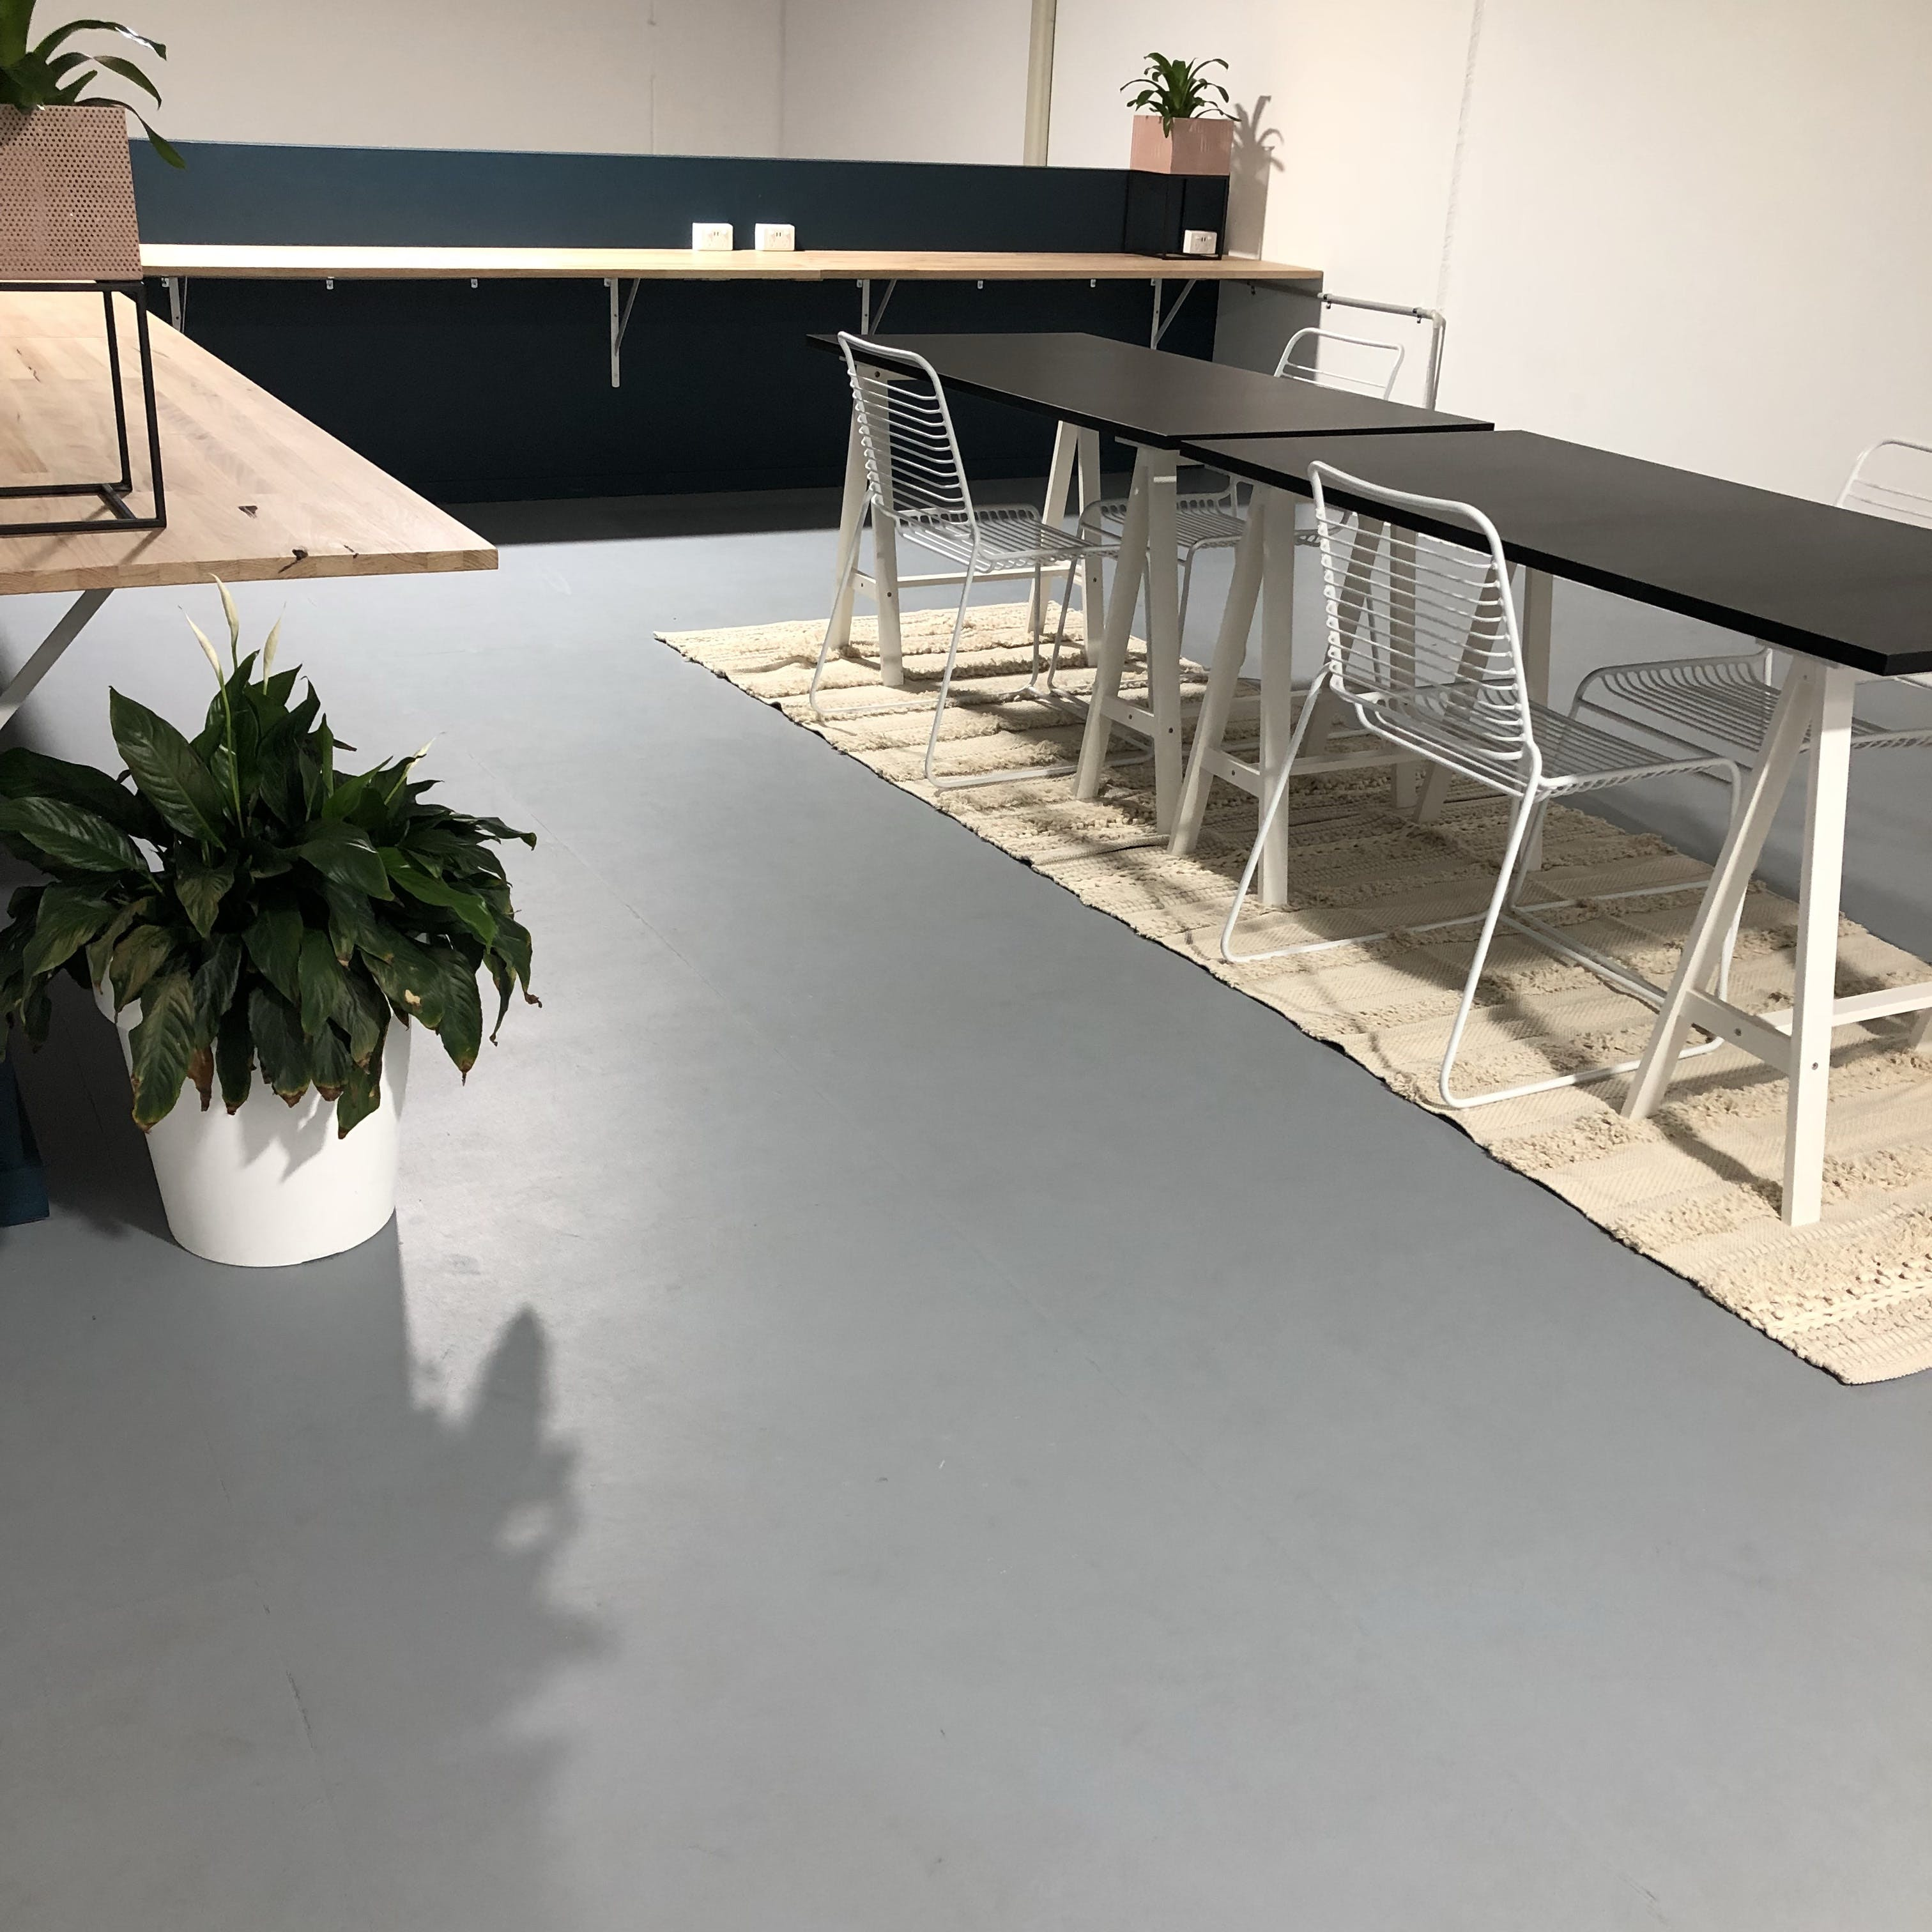 Event Space Weekend Half Day 1-5 Saturday OR Sunday, multi-use area at Bridge Coworking Meeting and Event Space Geelong, image 1